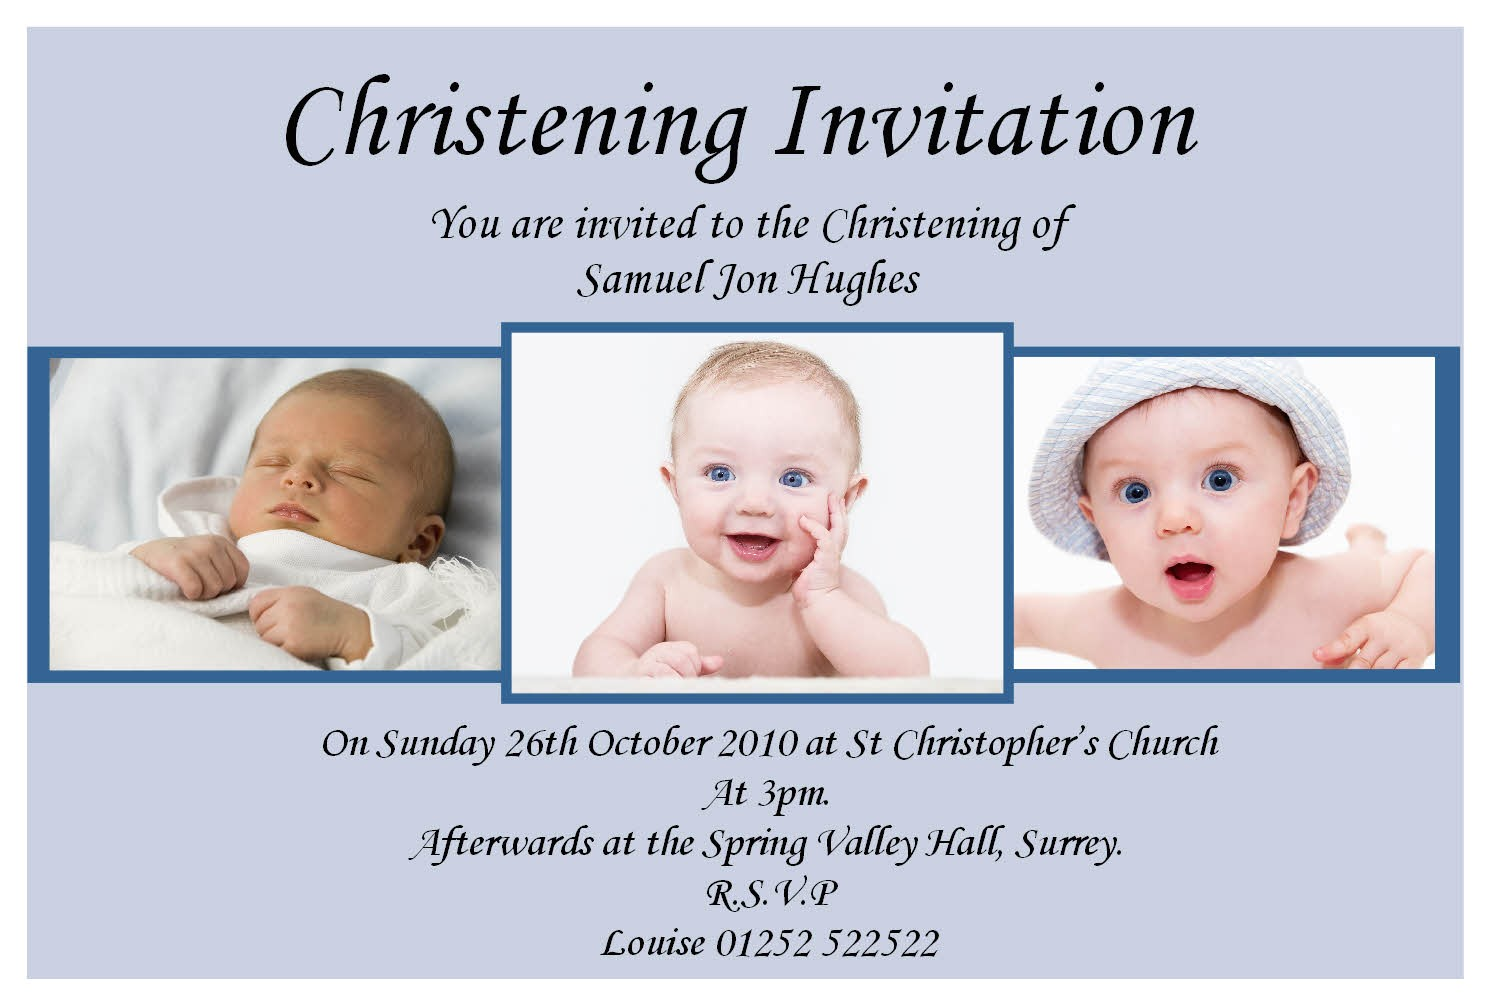 sample invitation card design of christening and baptism